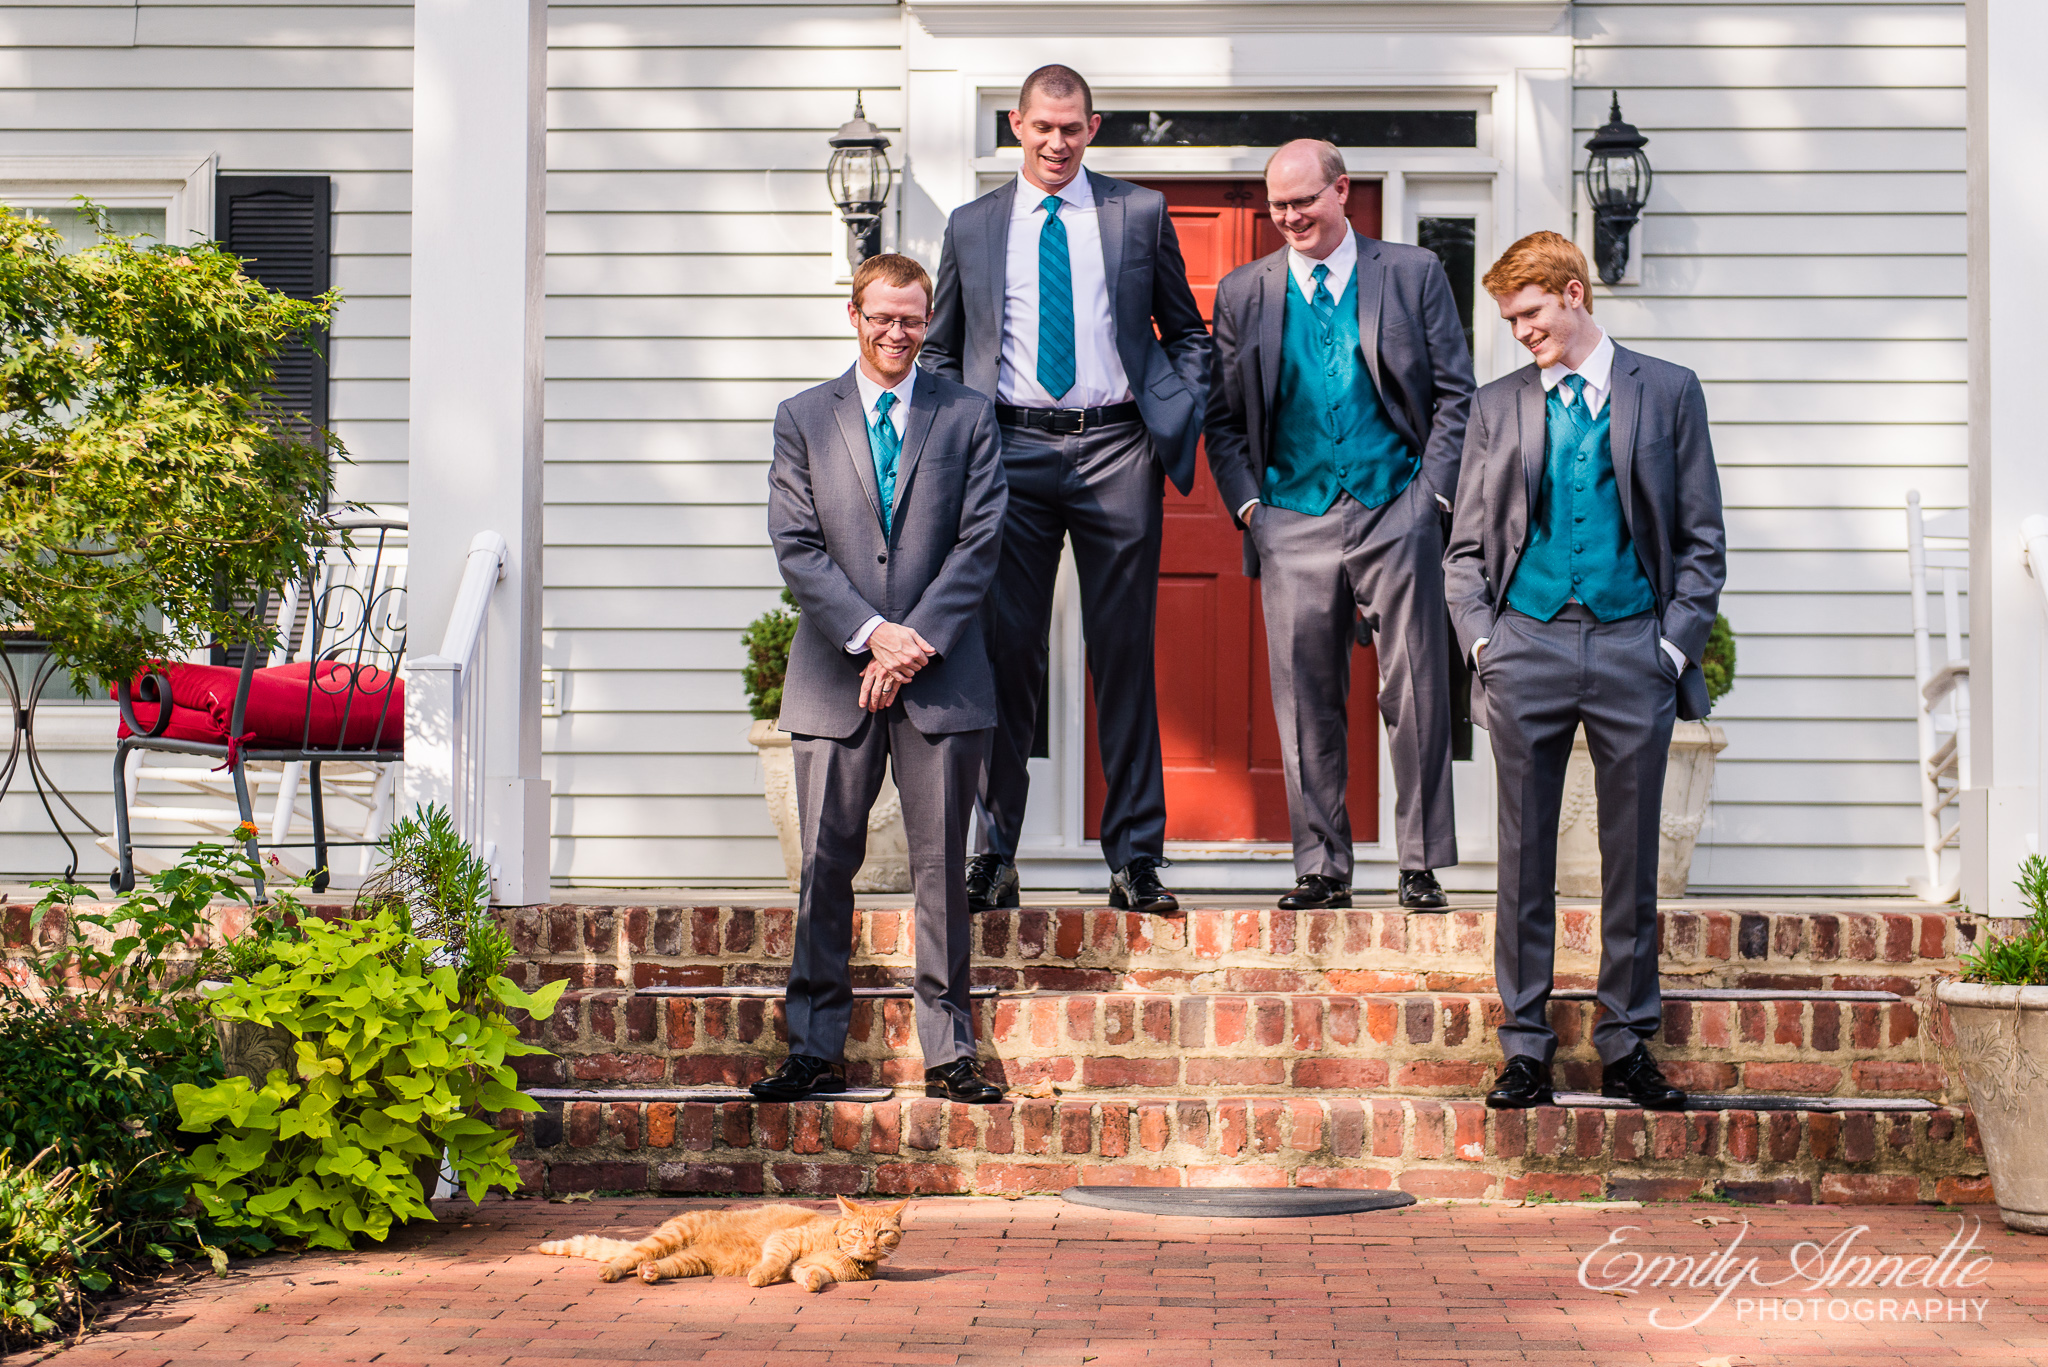 The groomsmen and groom pose with a cat on the front porch of a historic house during a country wedding at Amber Grove near Richmond, Virginia